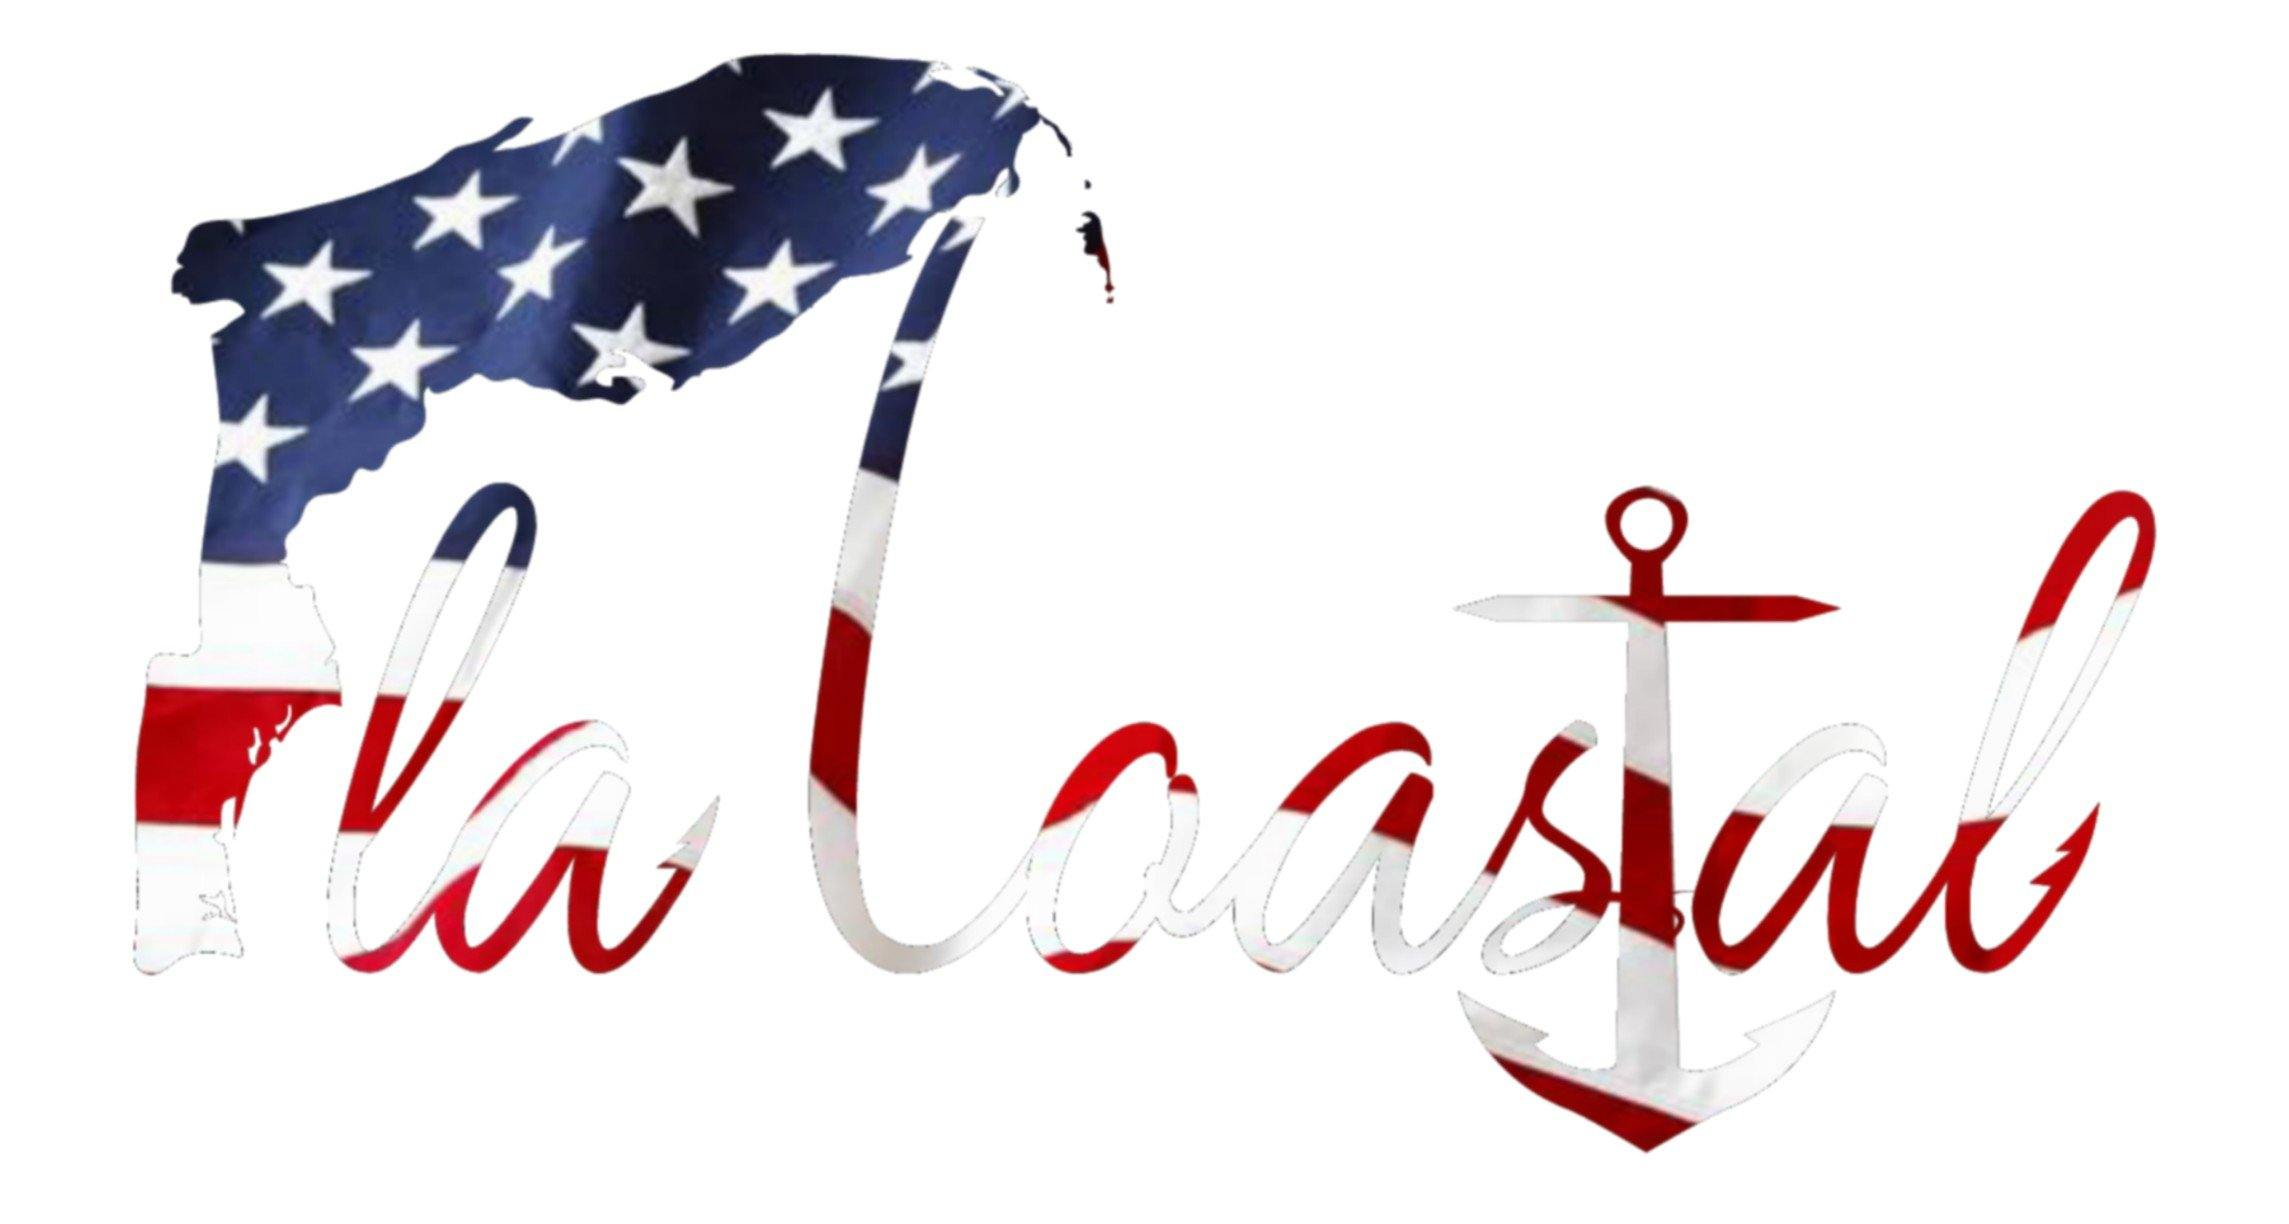 flacoastal - Fla Coastal American Flag Vinyl Decal